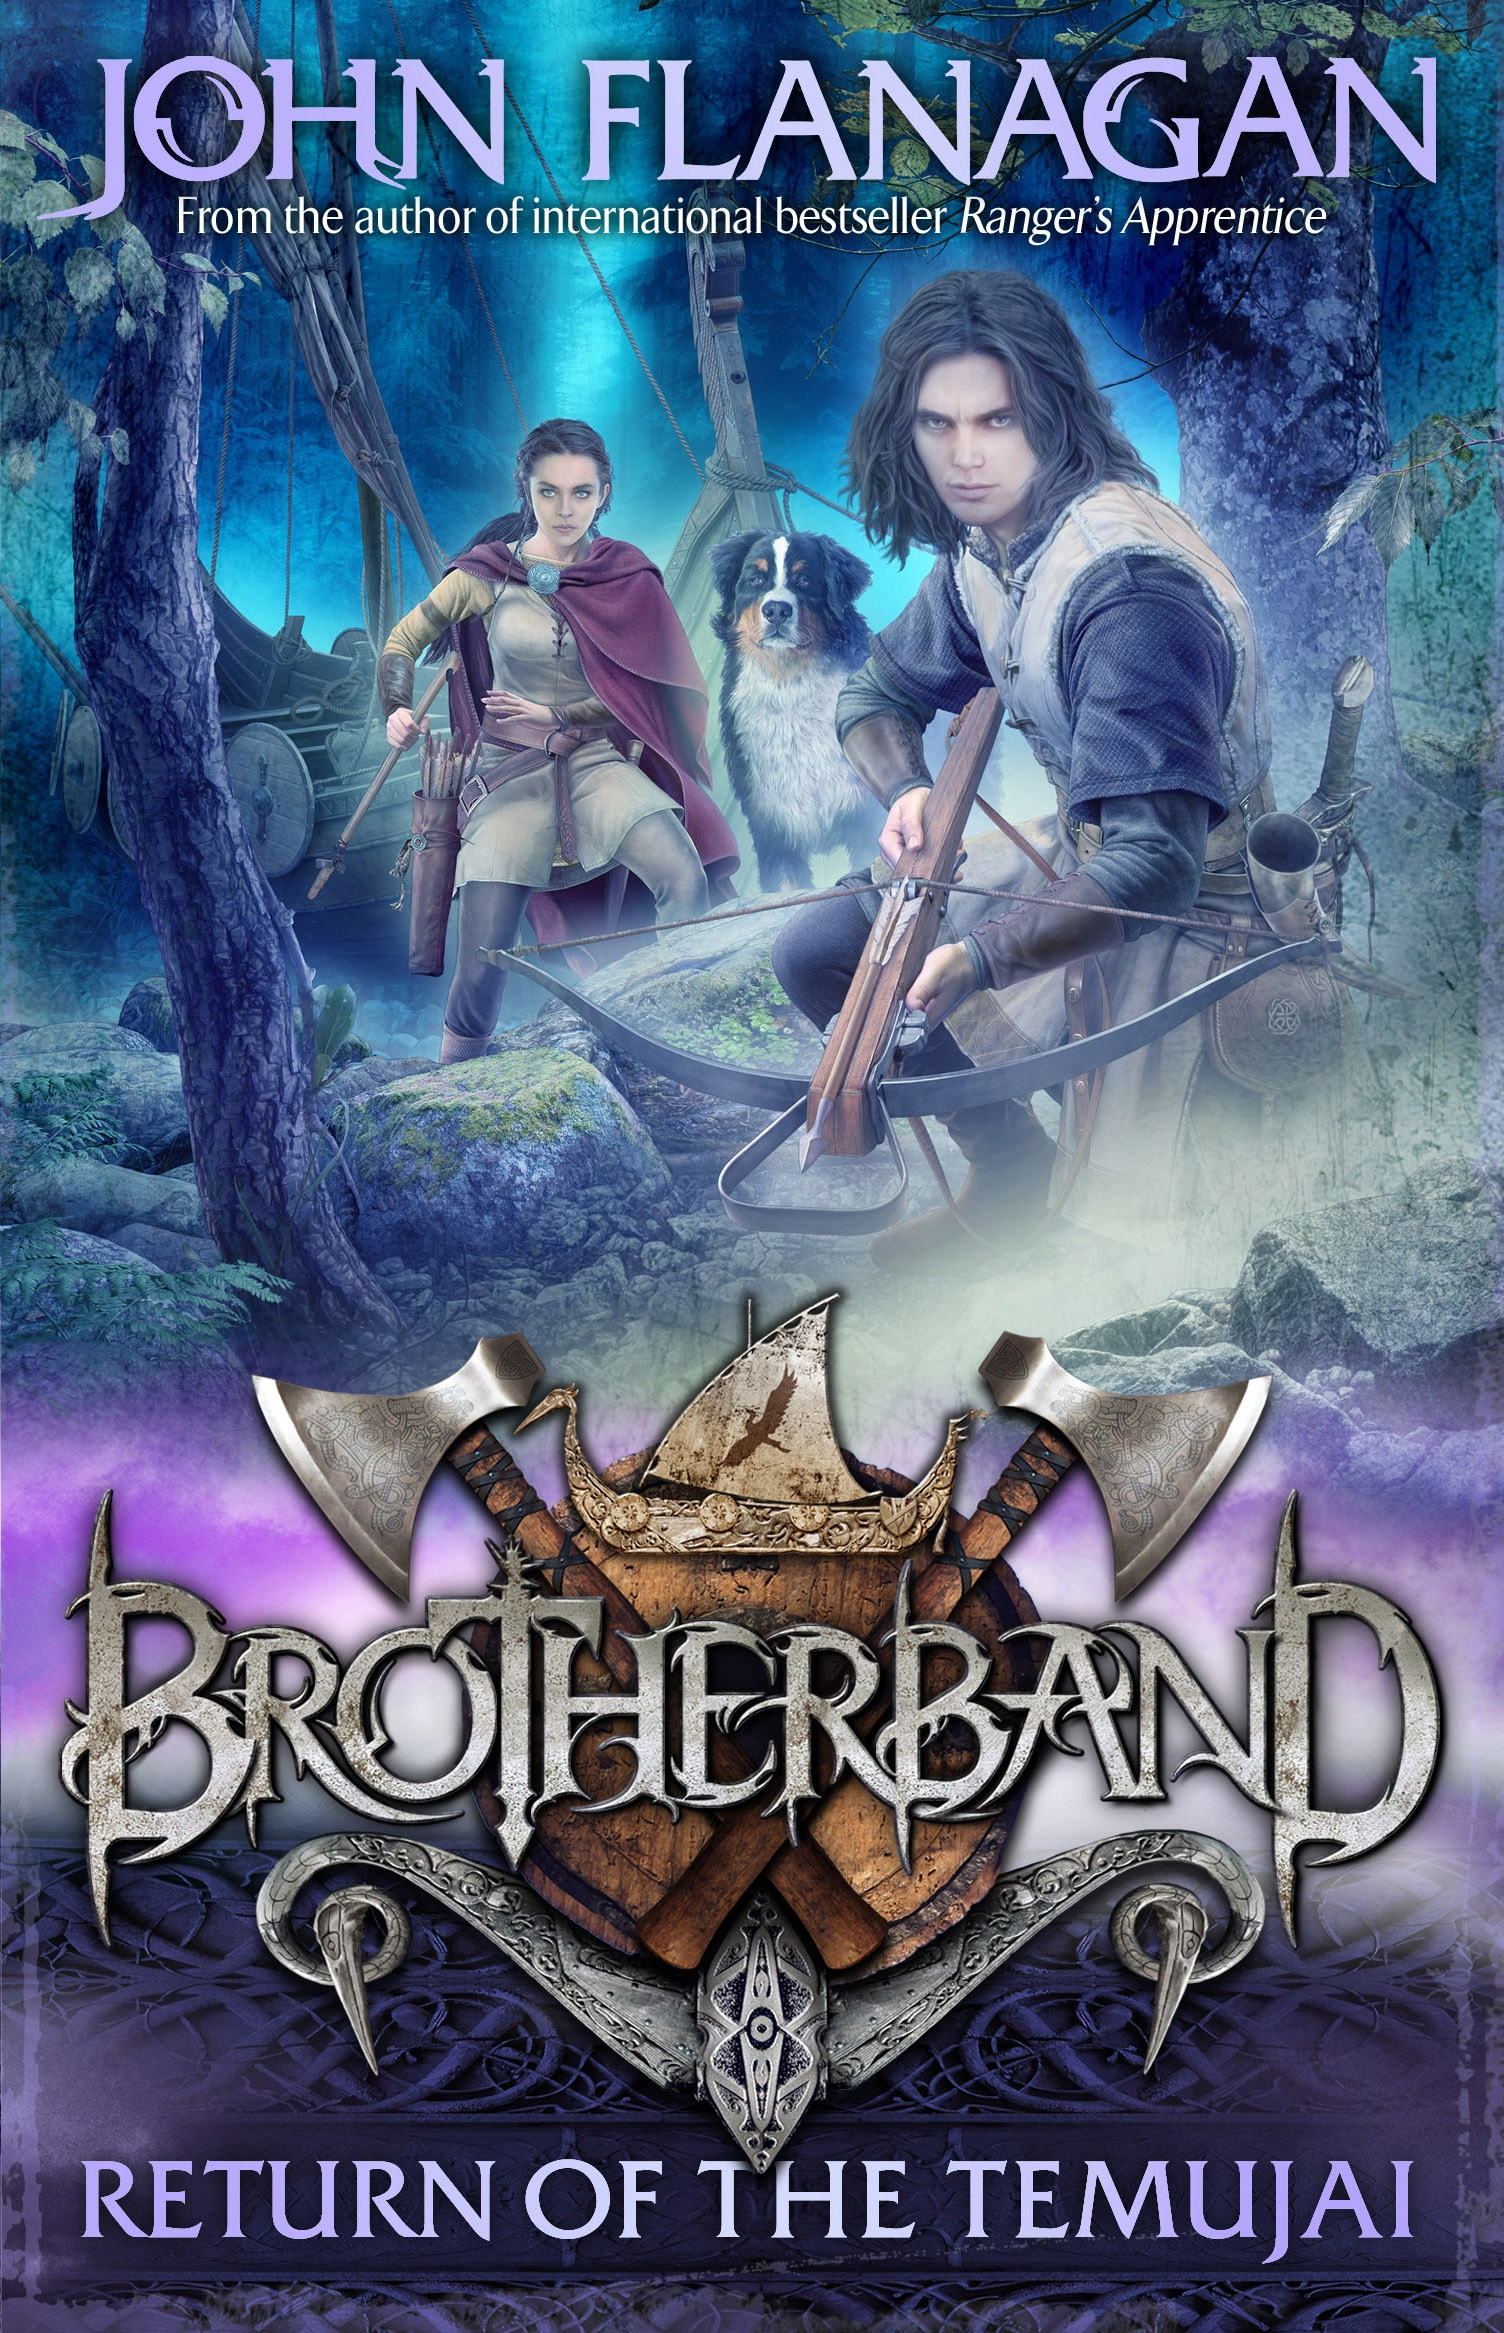 Brotherband 8: Return of the Temujai by John Flanagan